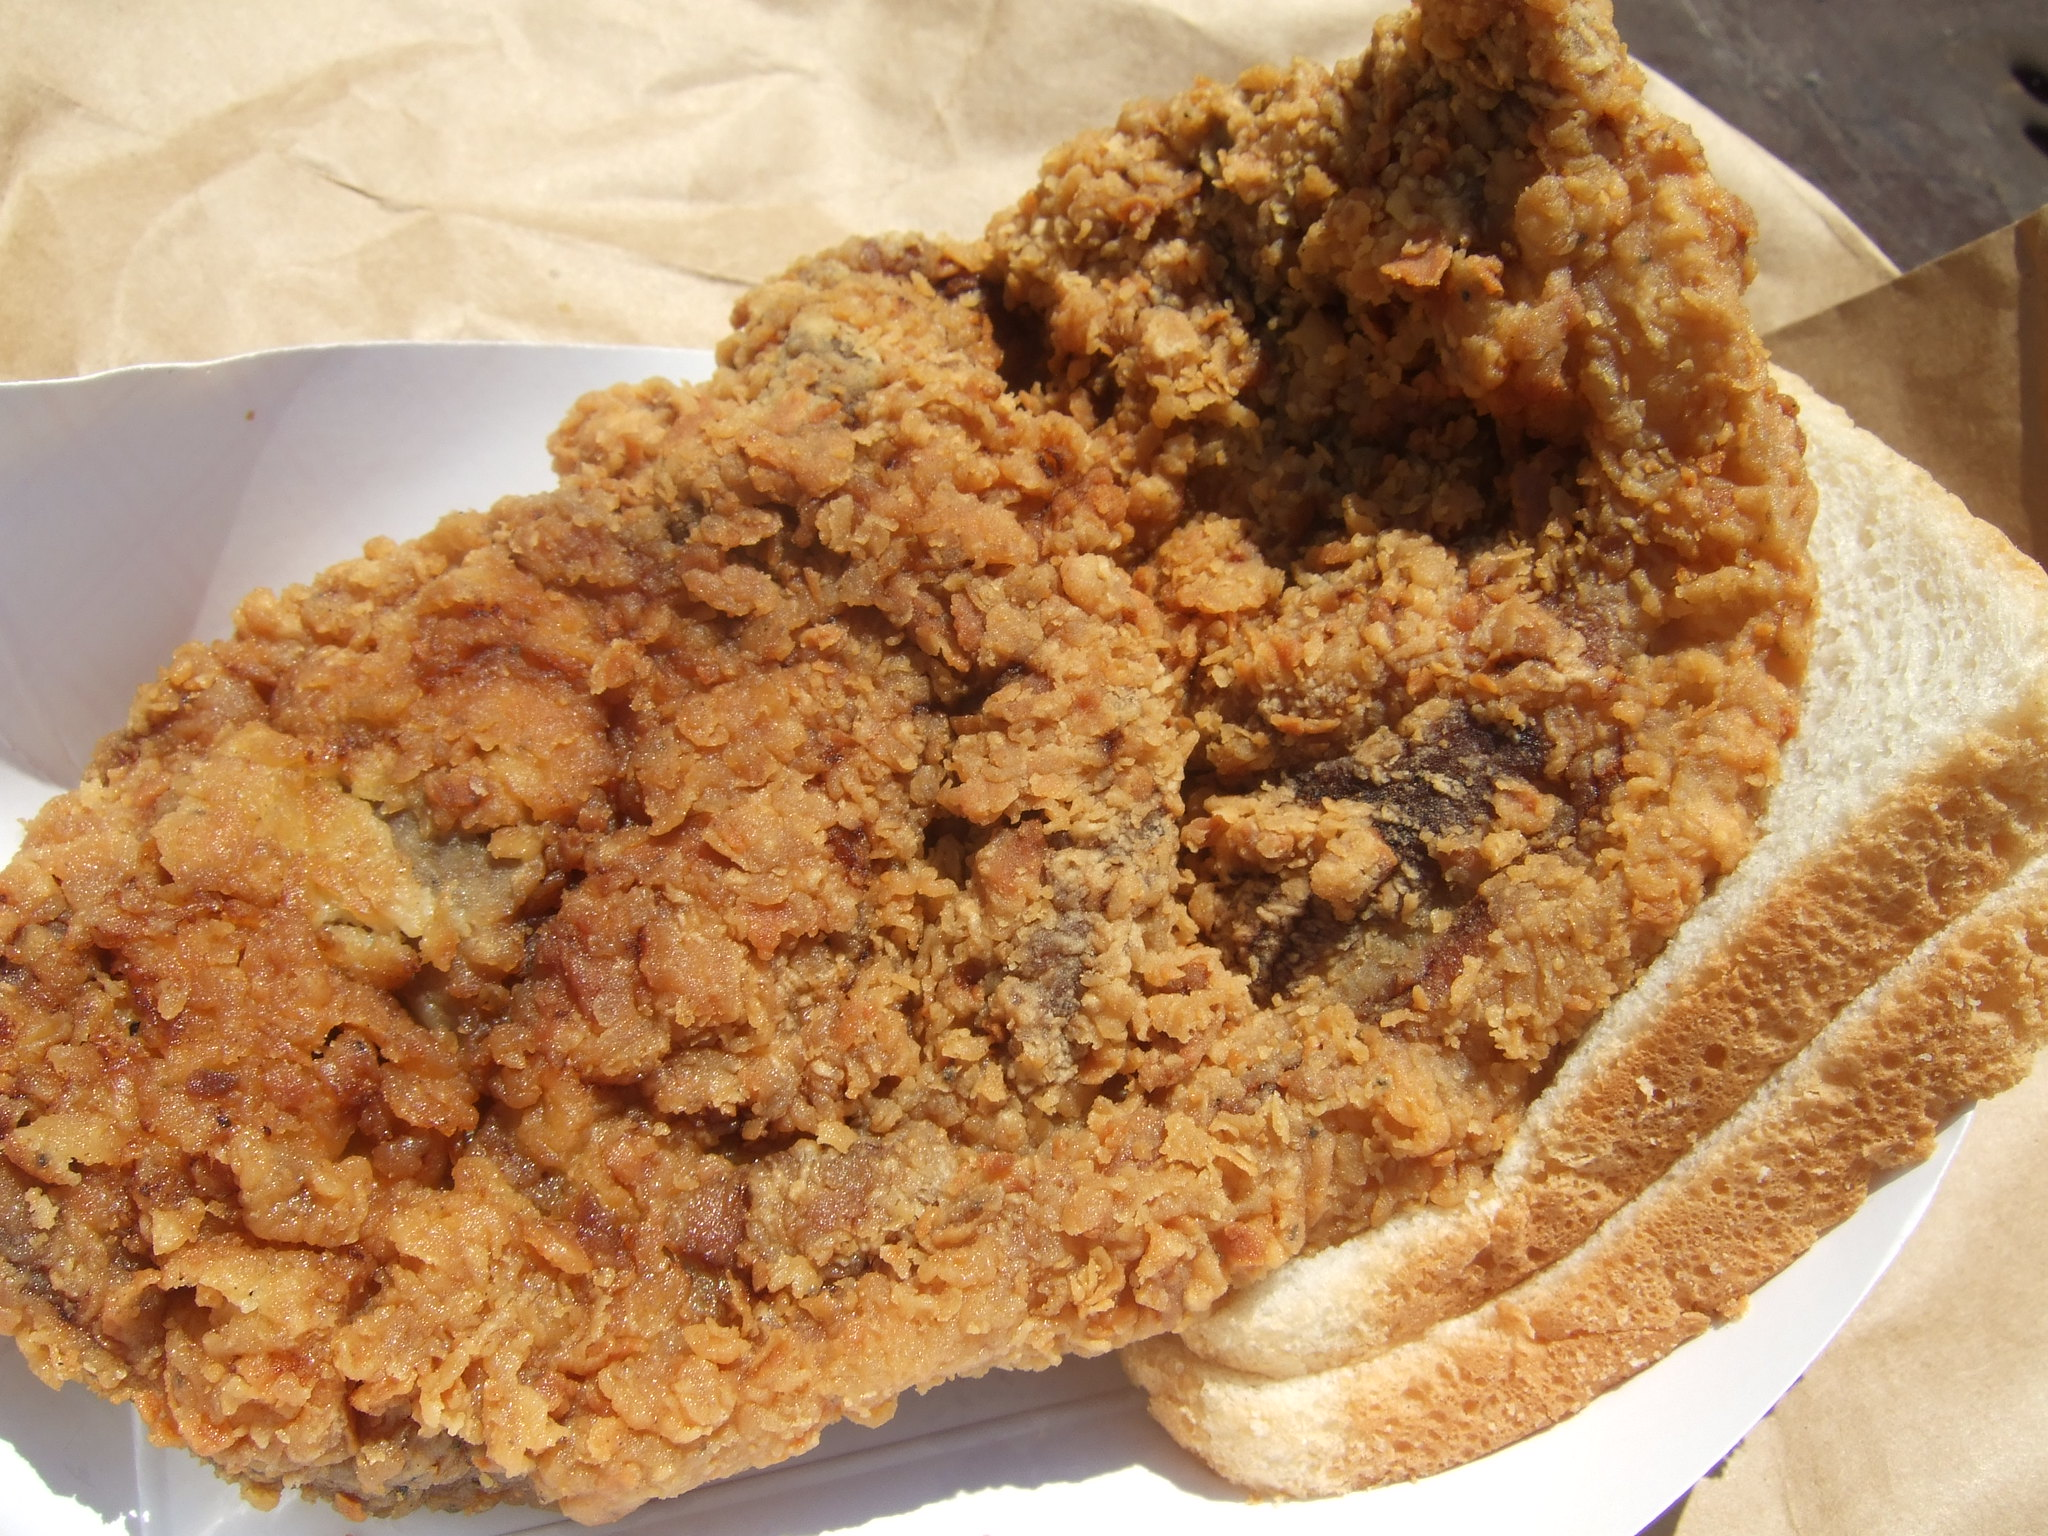 Fried Pork Chop - photo by Houston Foodie under CC BY 2.0